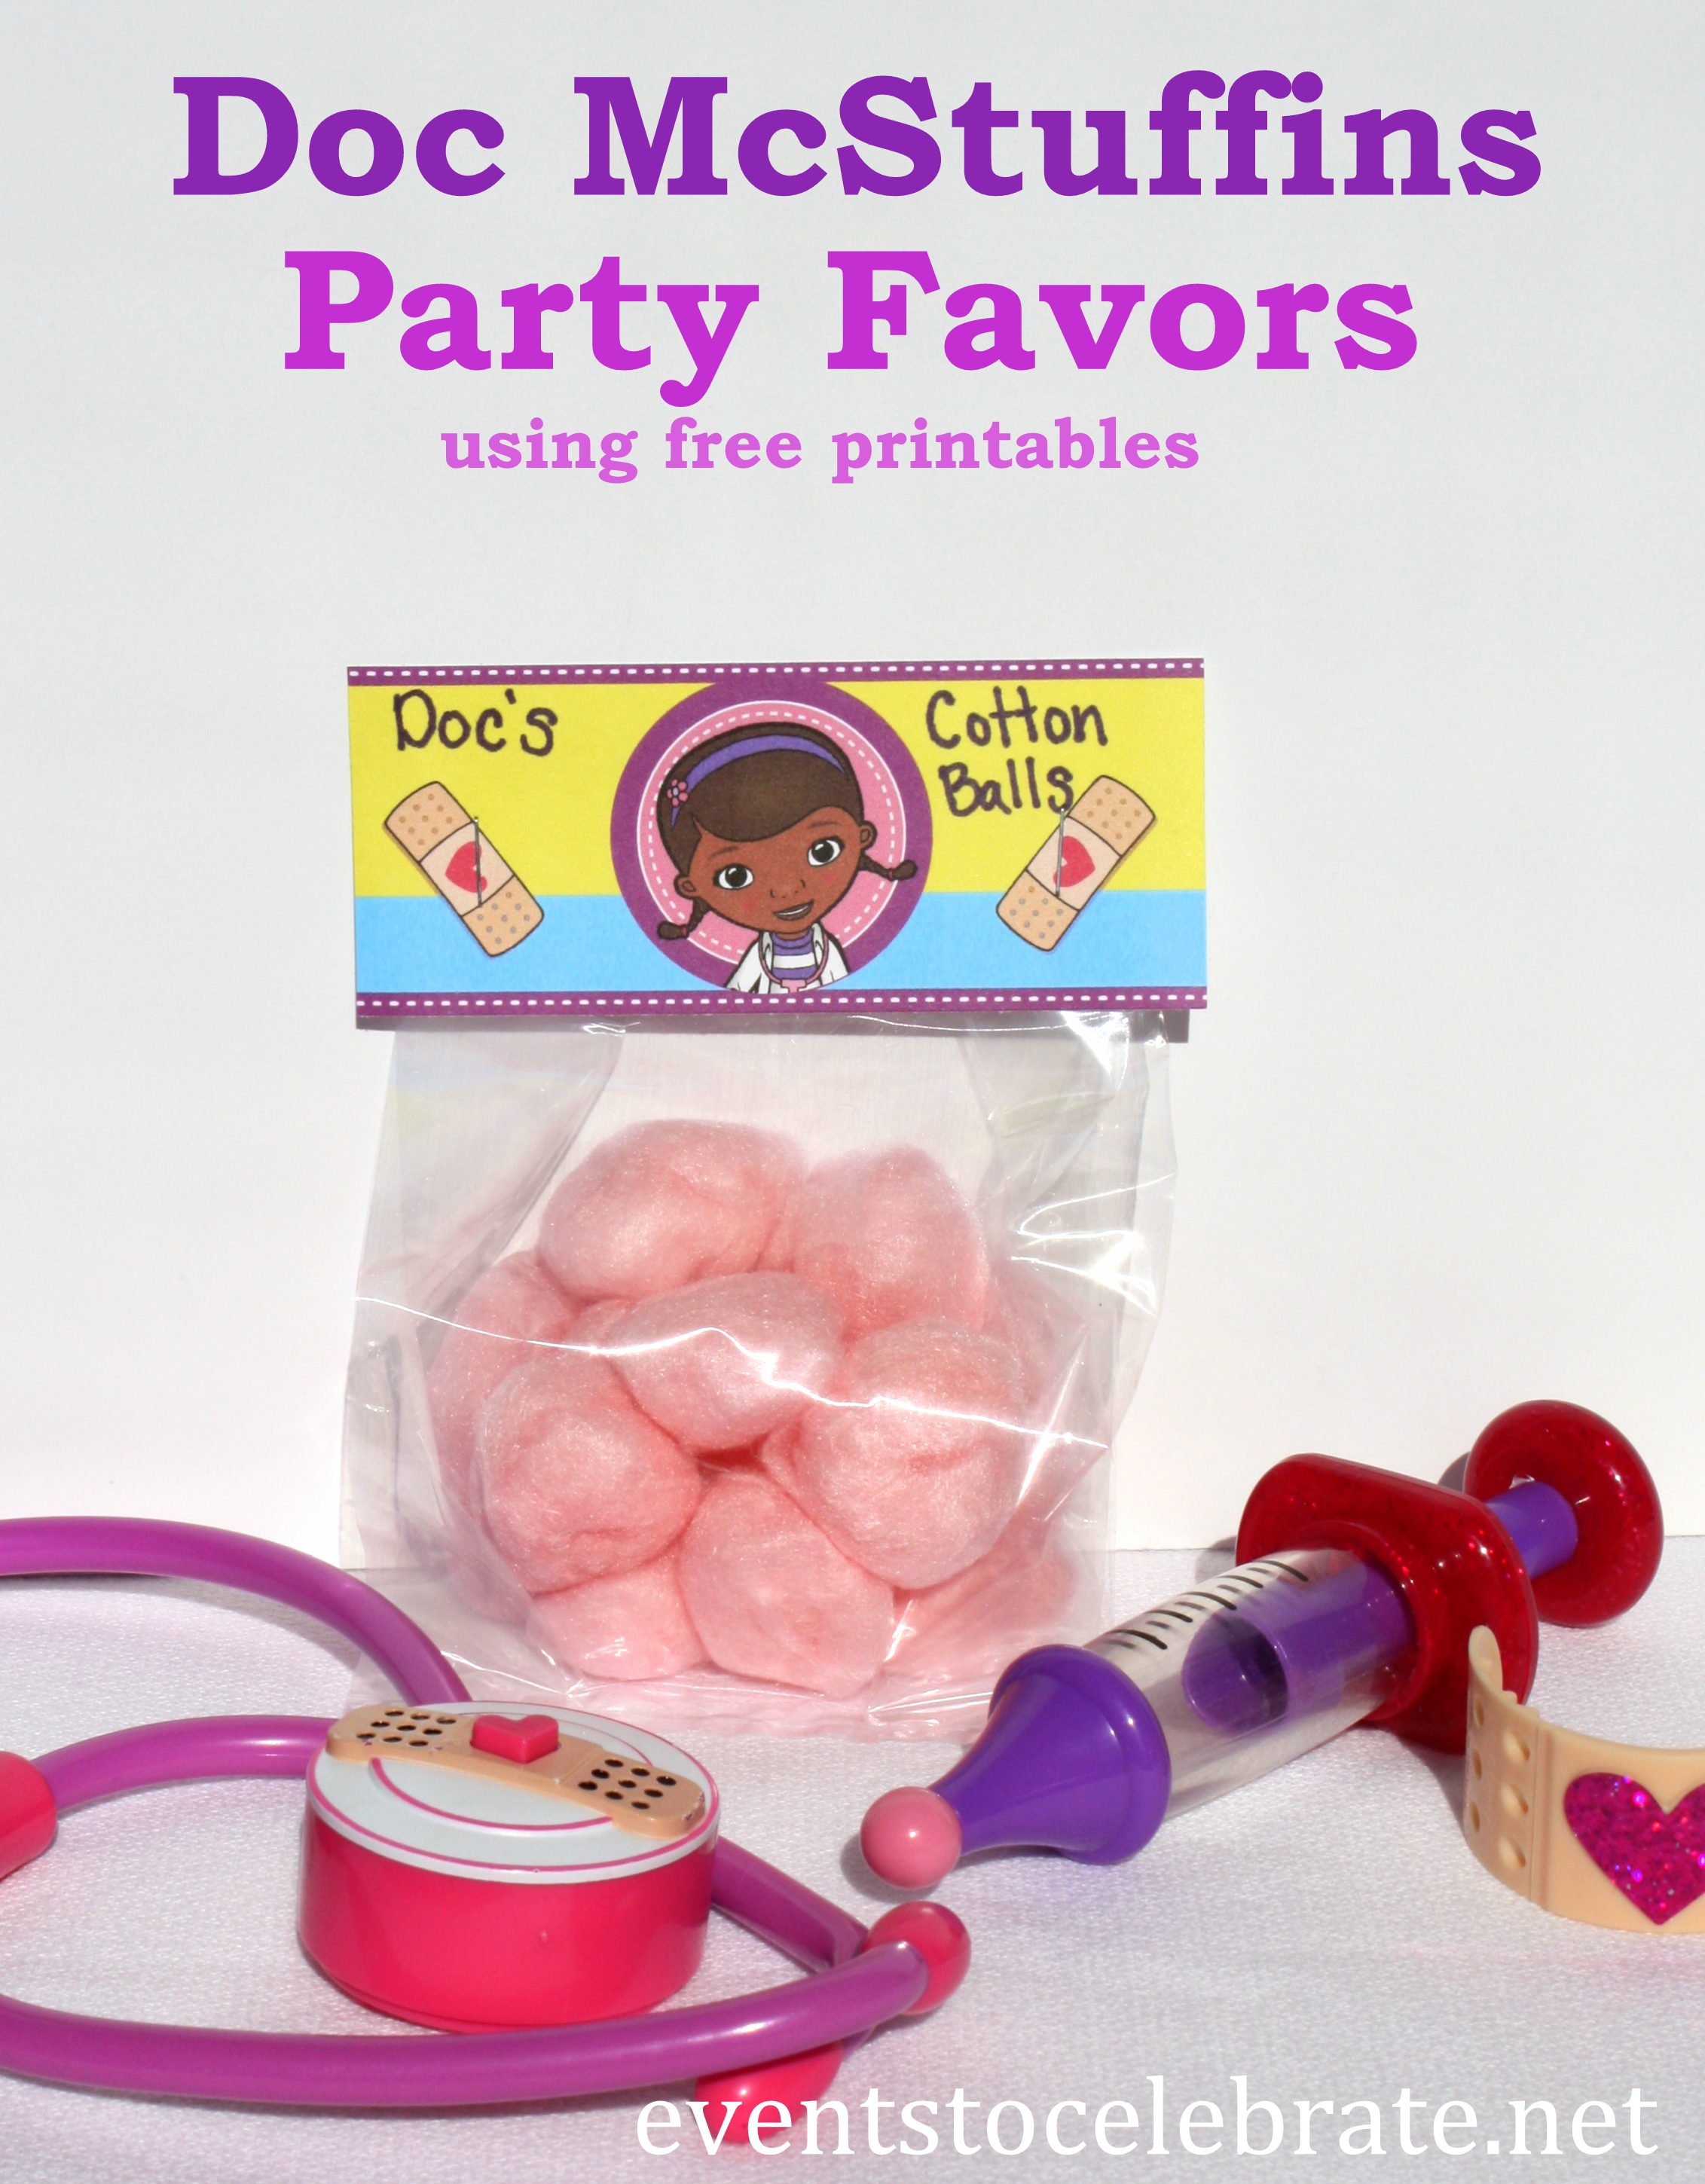 Doc McStuffins Party Favors - free printables - eventstocelebrate.net